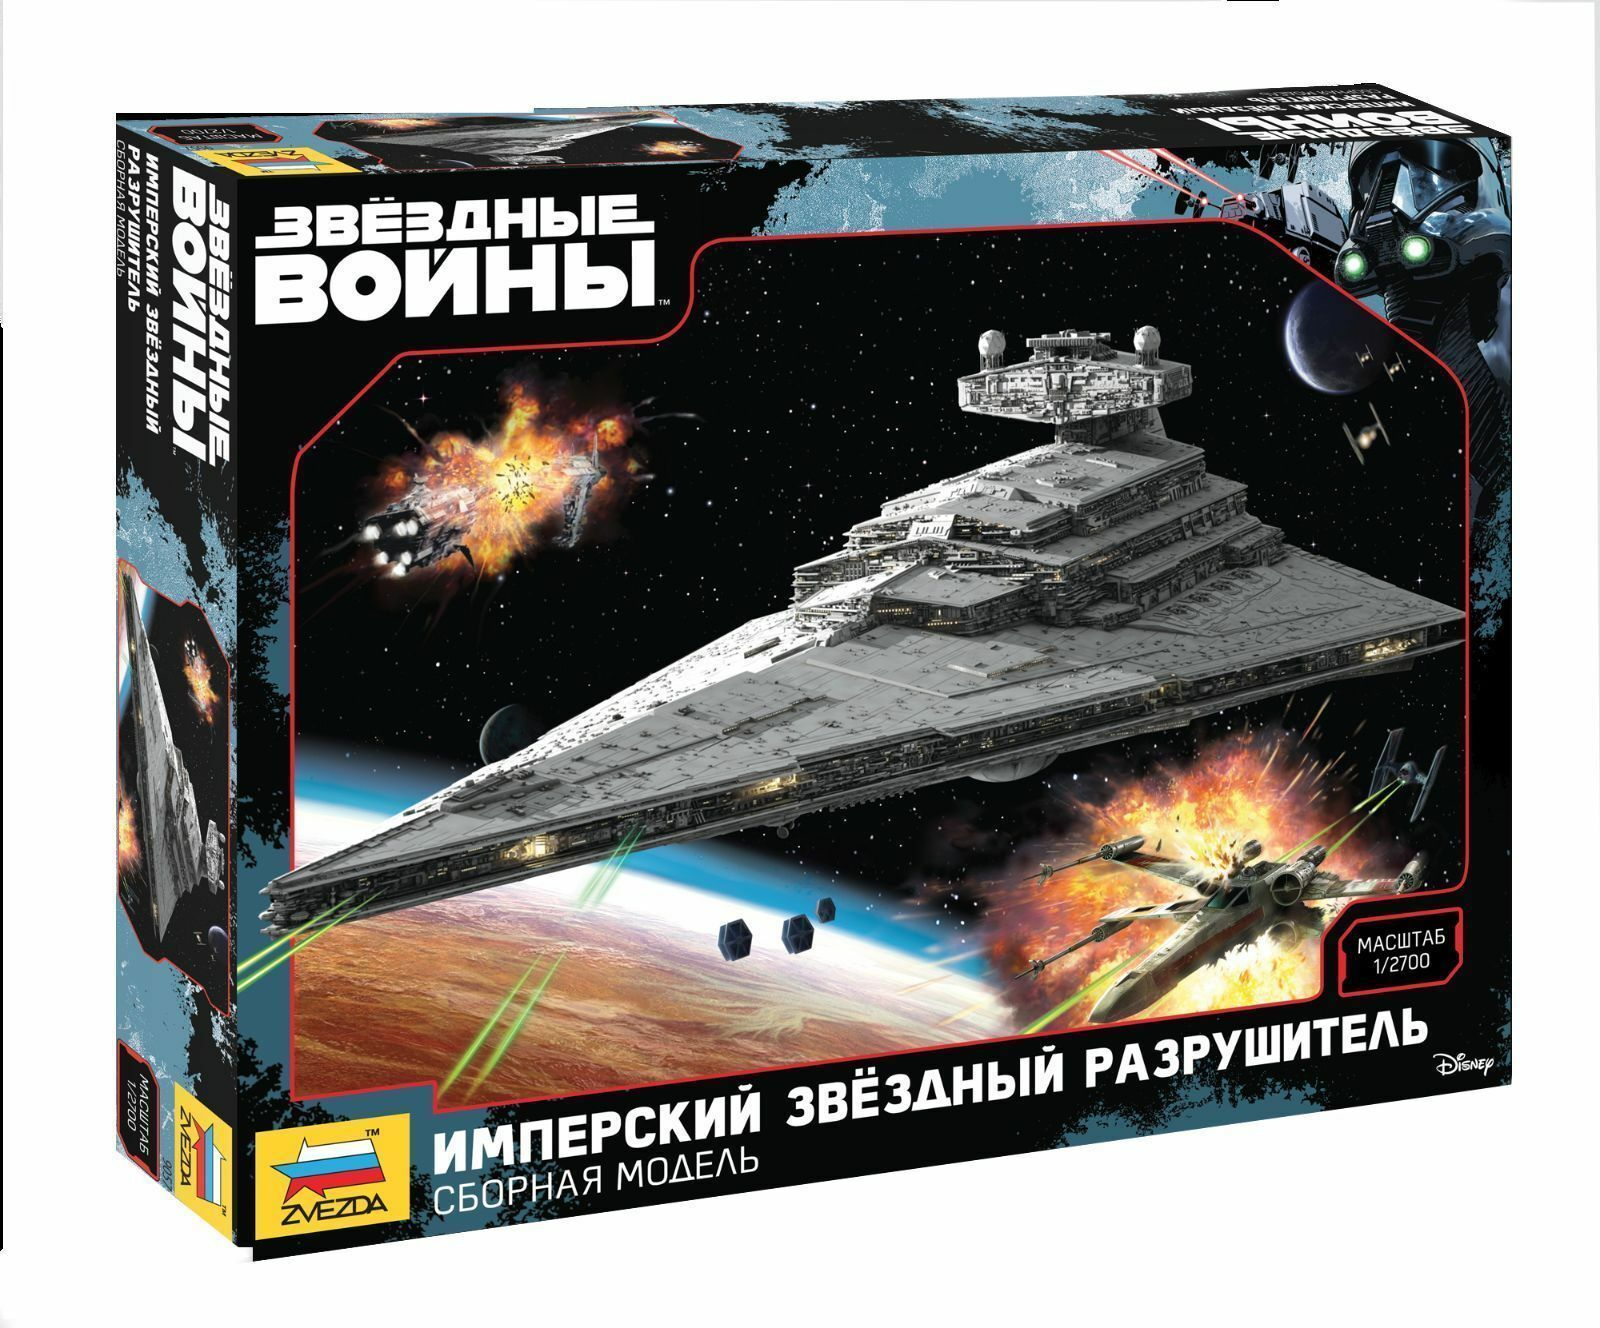 ZVEZDA 9057 STAR WARS IMPERIAL STAR DESTROYER Plastic Scale Model Kit 1:2700 BOX